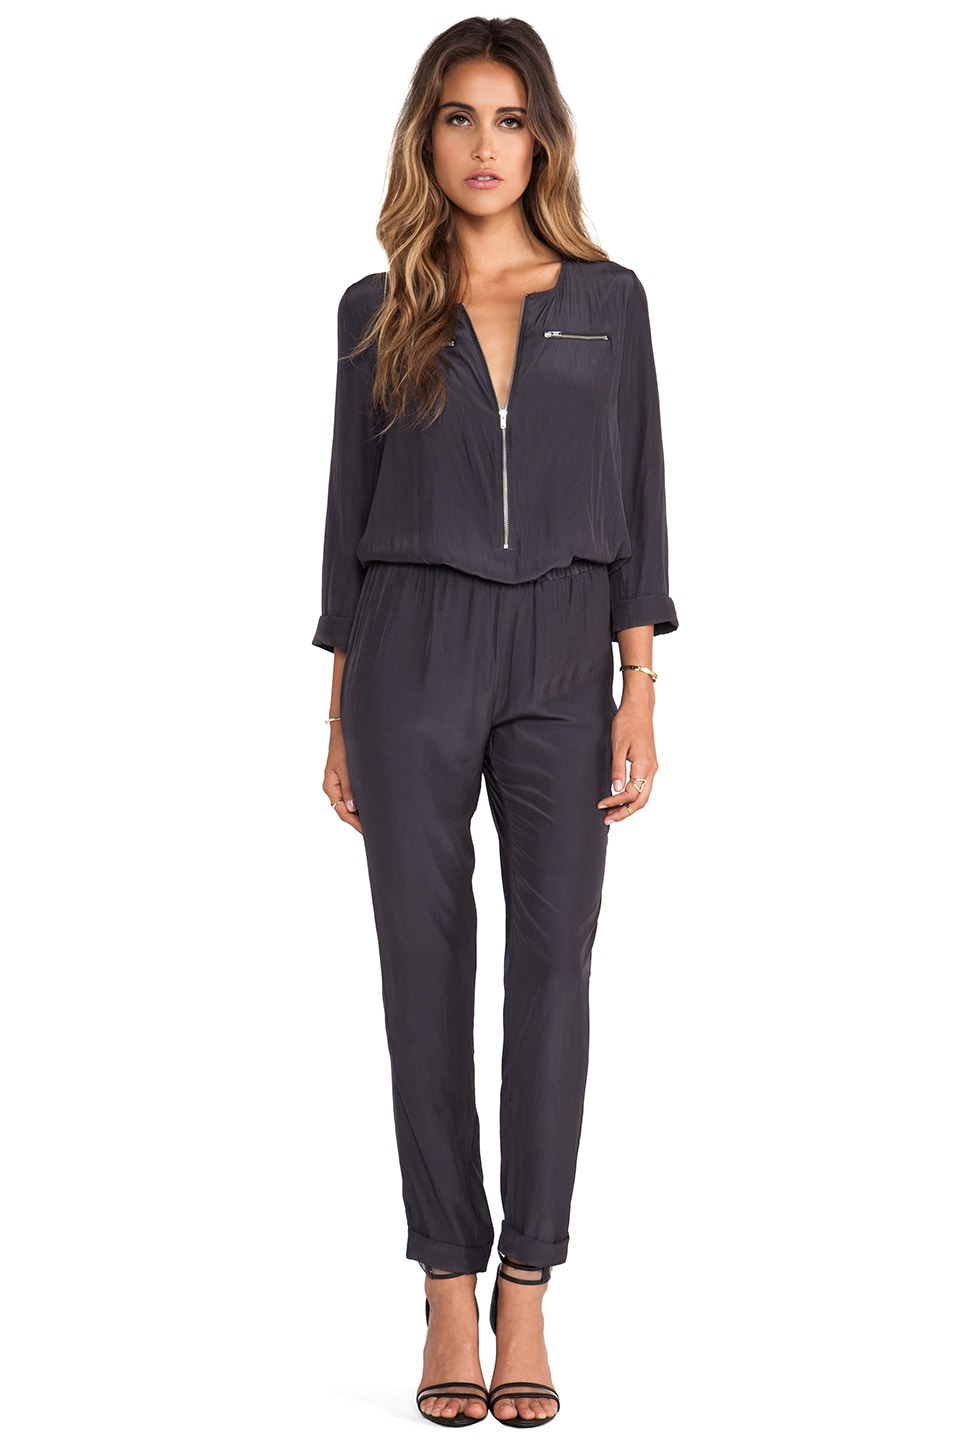 American Vintage Zachary Jumpsuit in Carbon